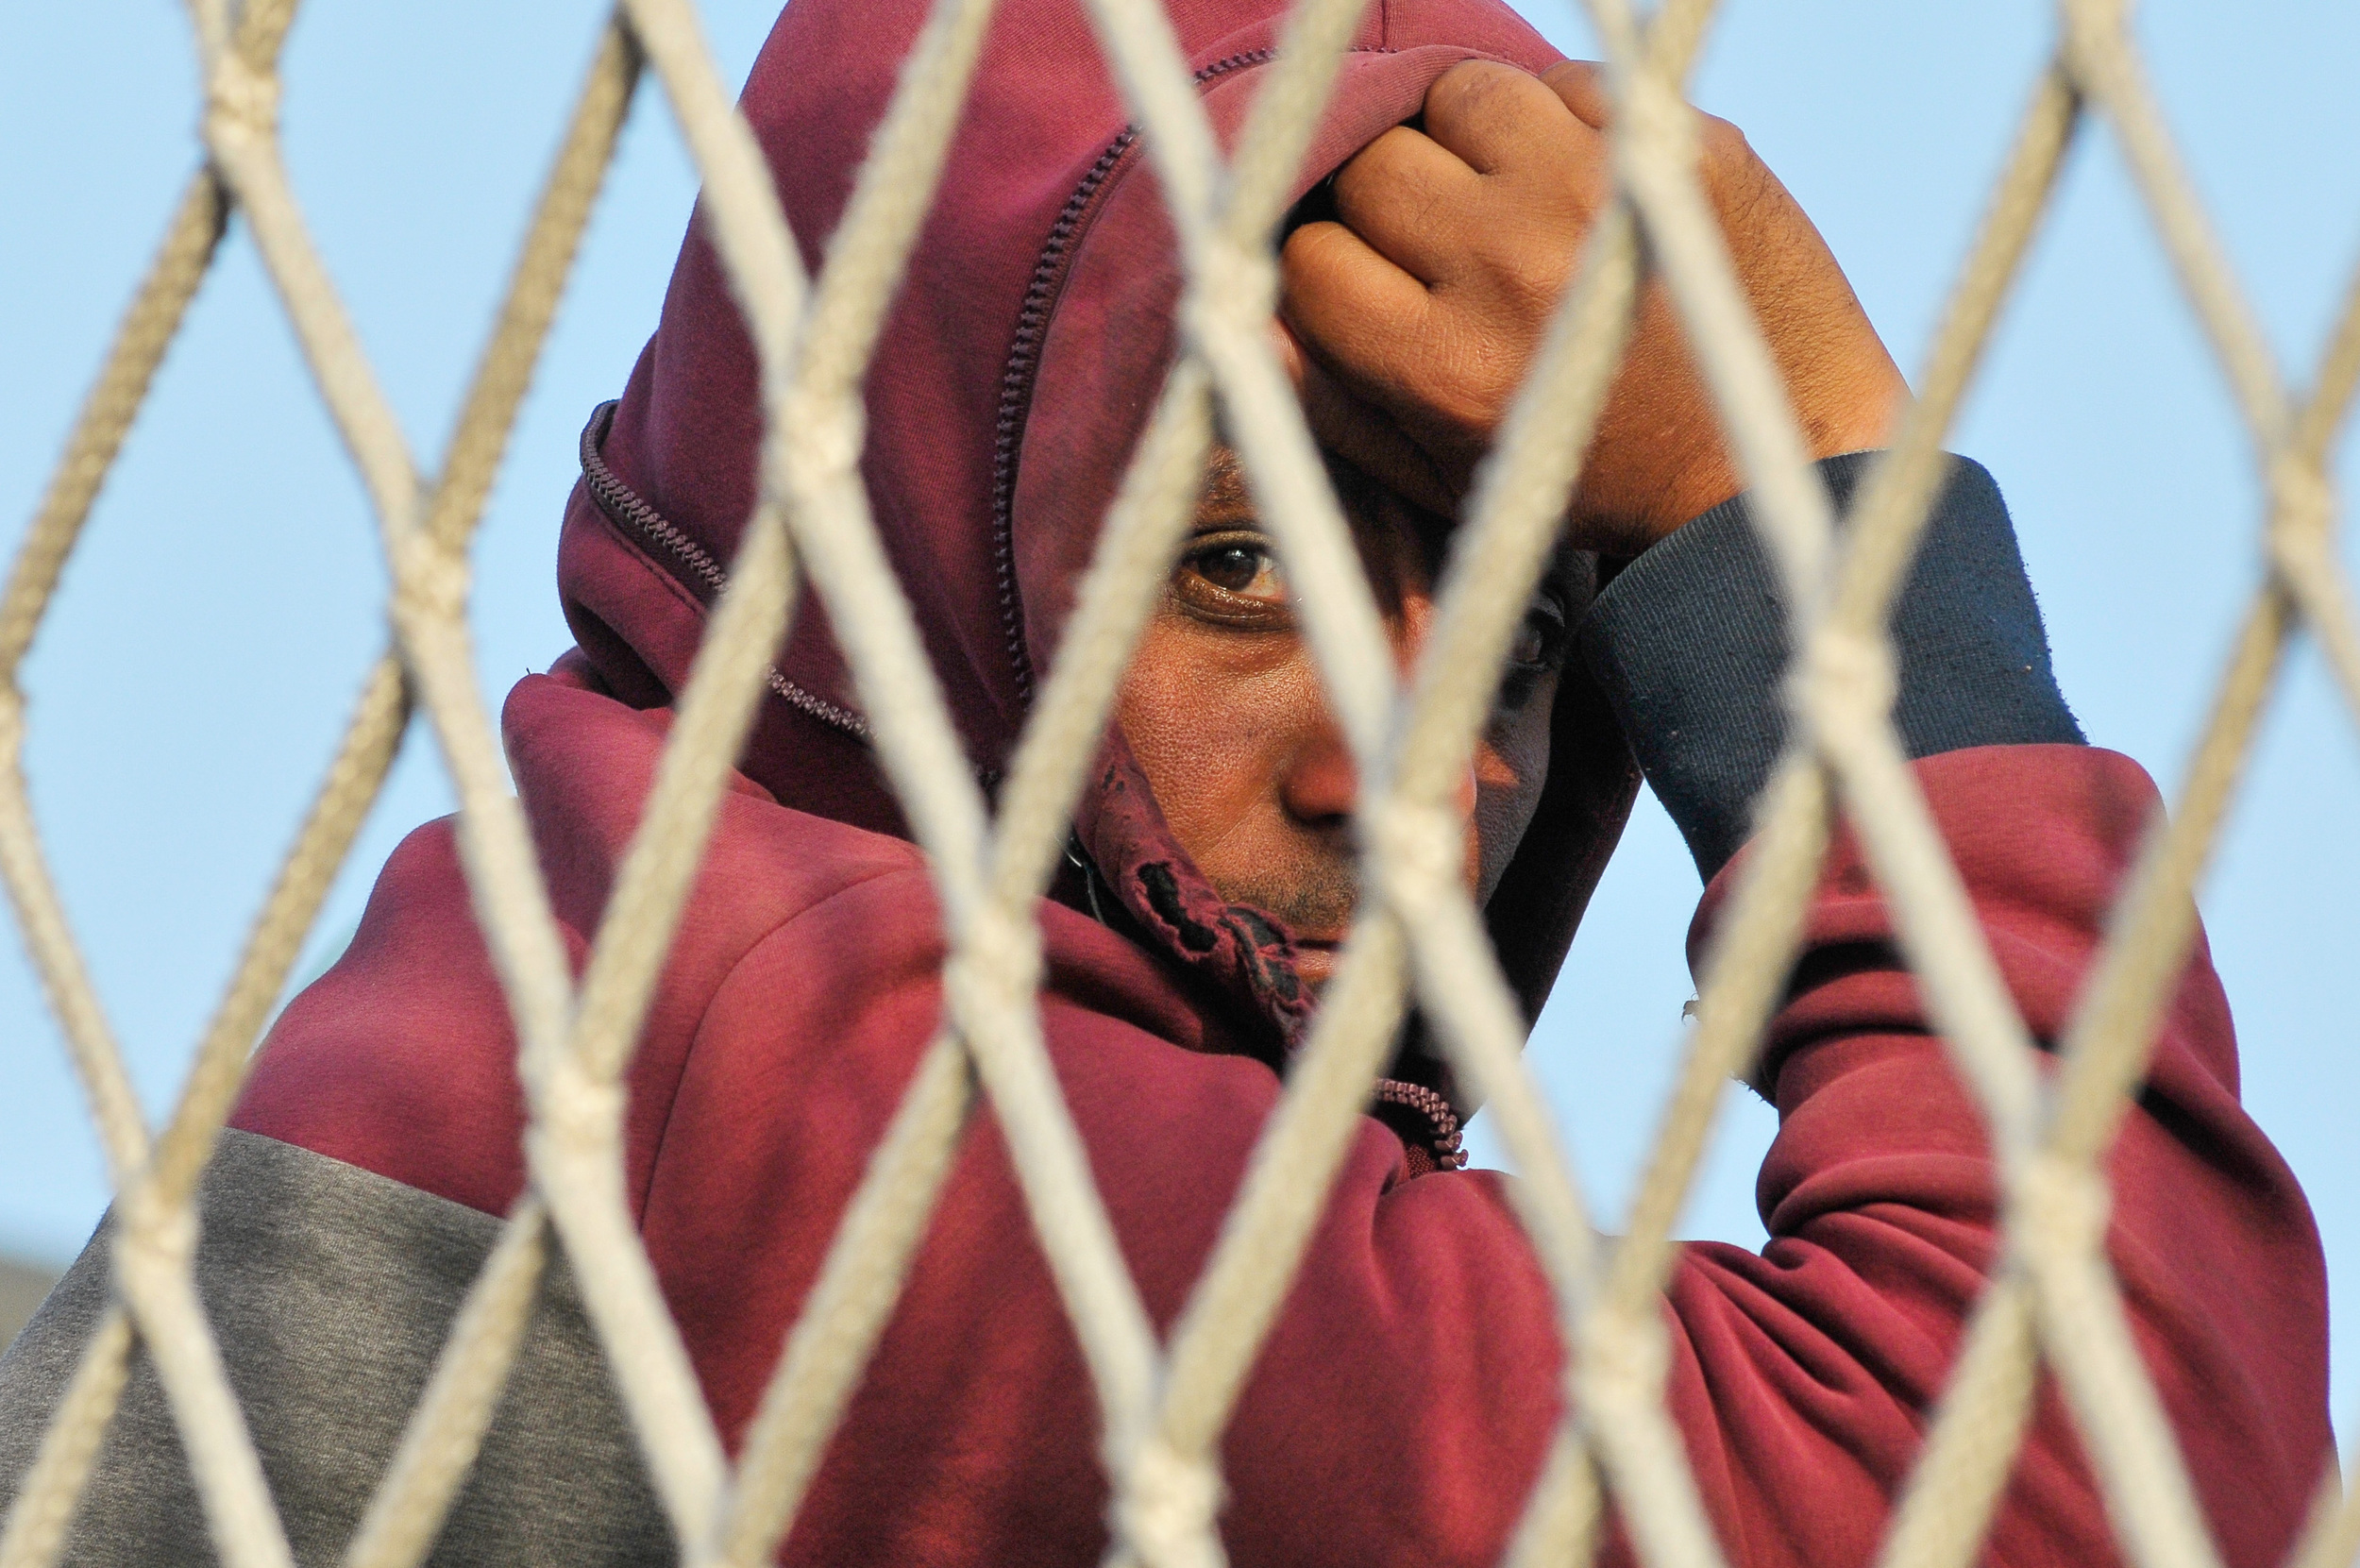 A migrant waits to disembark from the Italian navy ship Borsini in the Sicilian harbour of Palermo, Italy May 5, 2015.